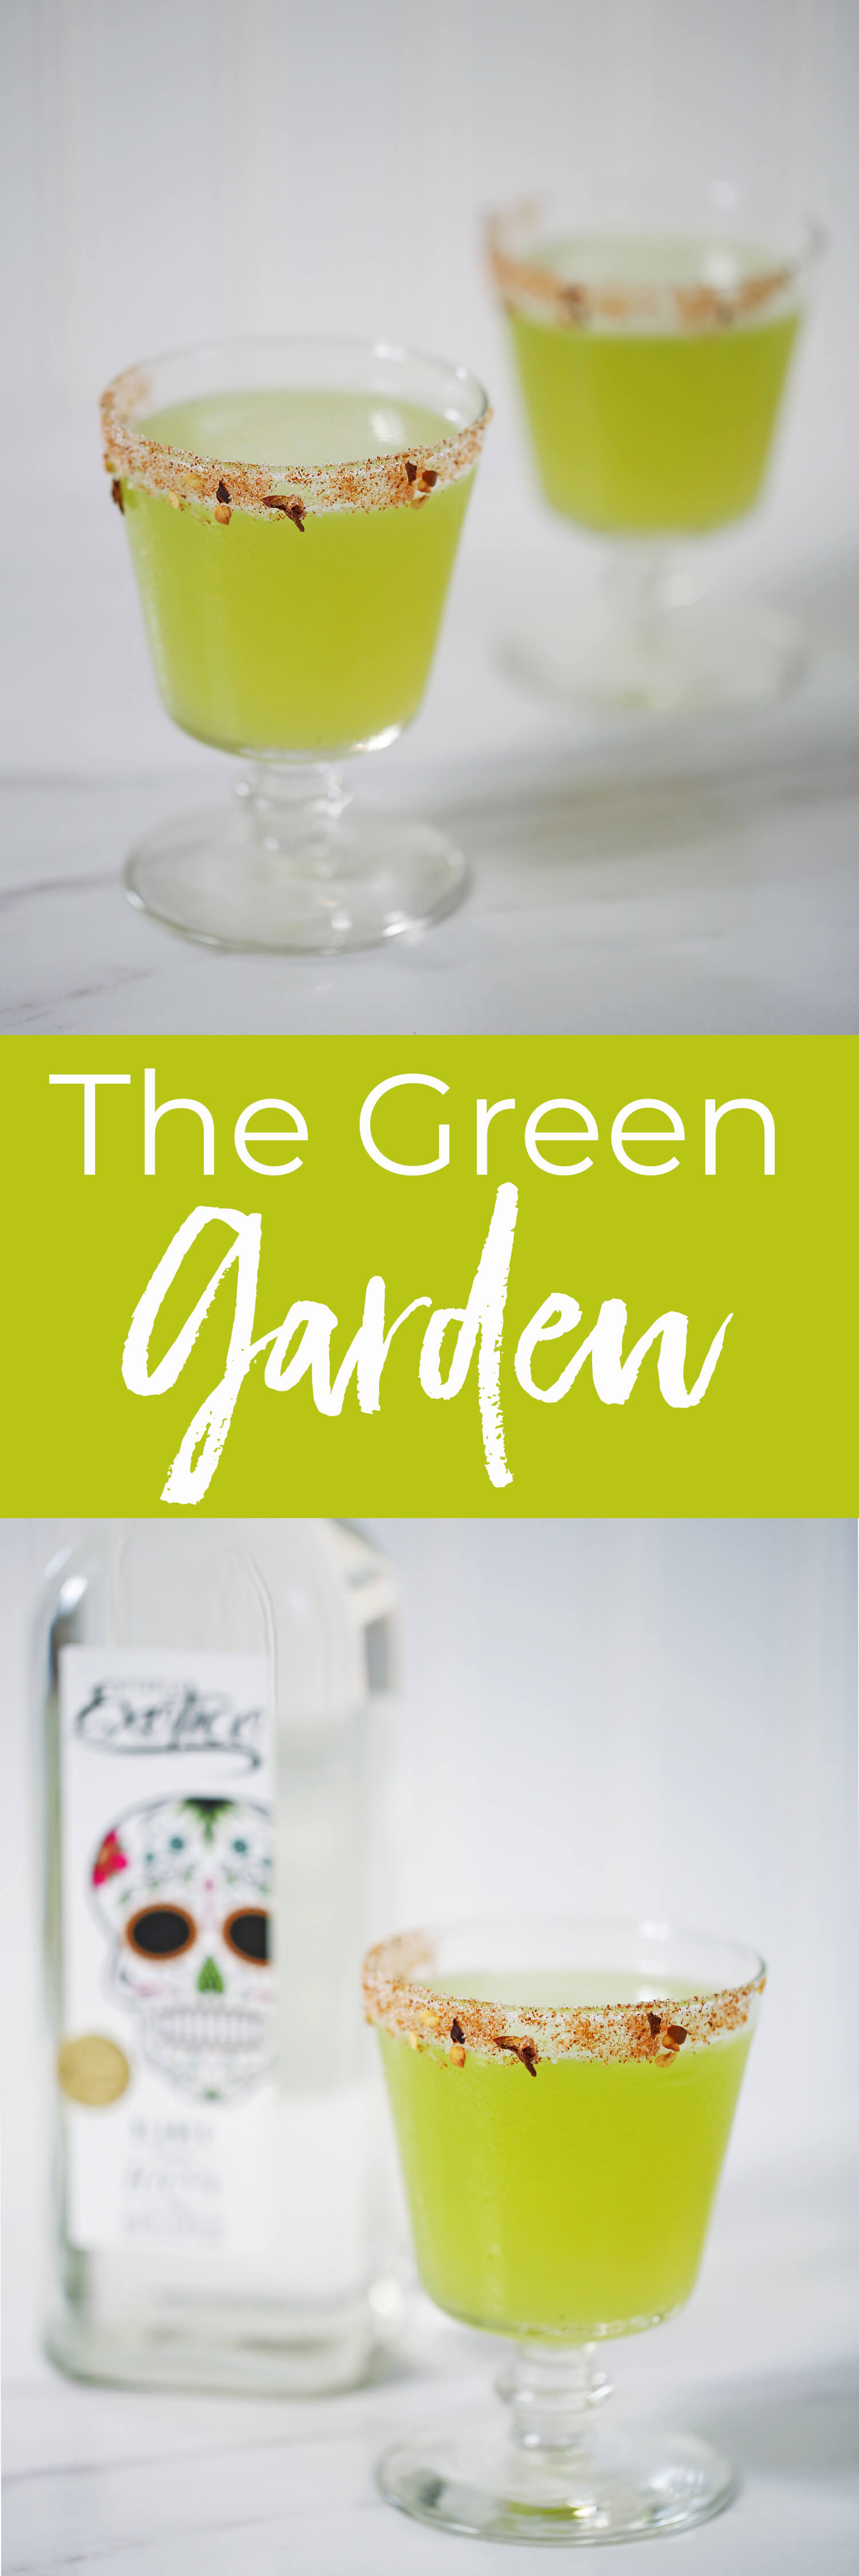 The Green Garden Cocktail